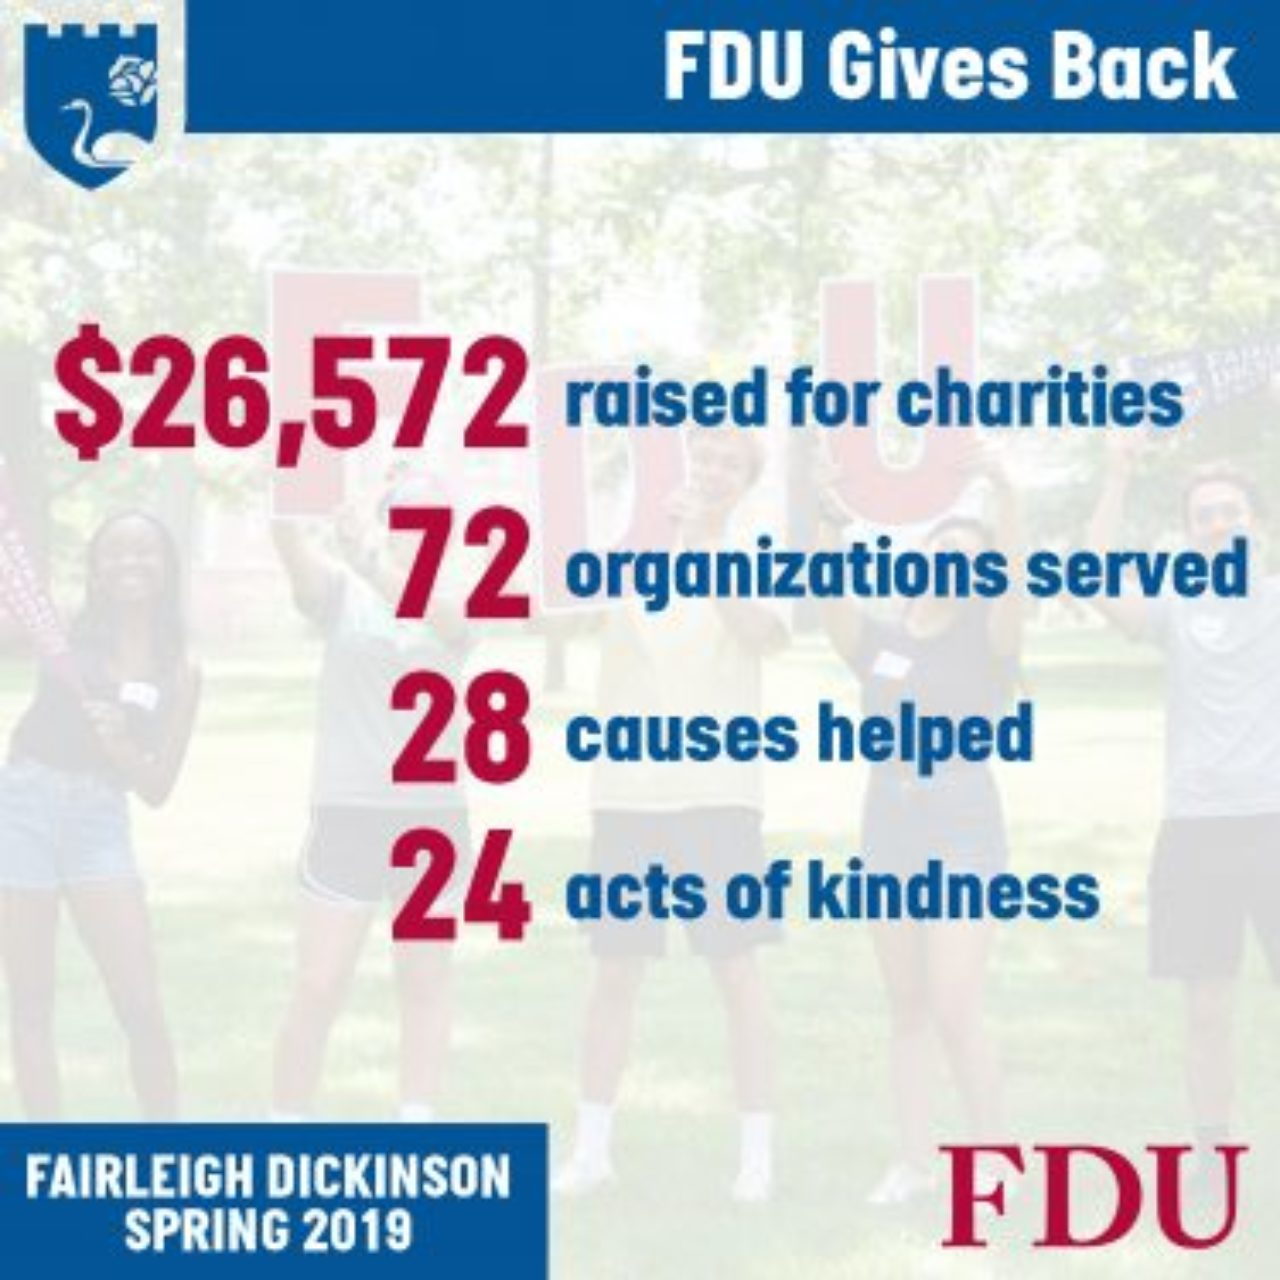 FDU gives back infographic